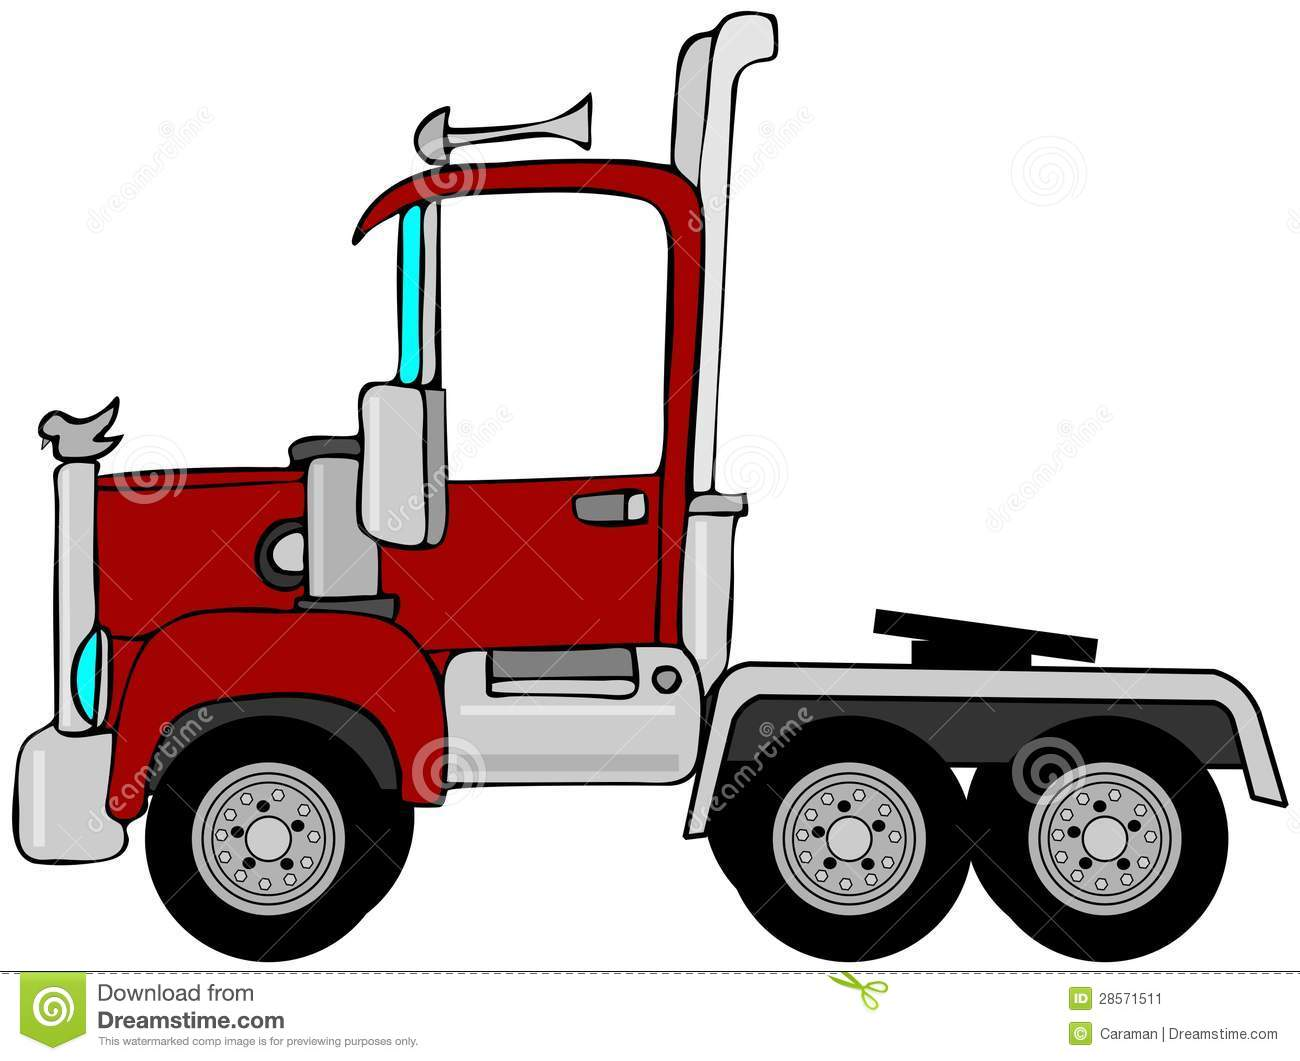 Semi Truck Seats >> Semi truck cab stock vector. Image of horn, pipe, truck - 28571511